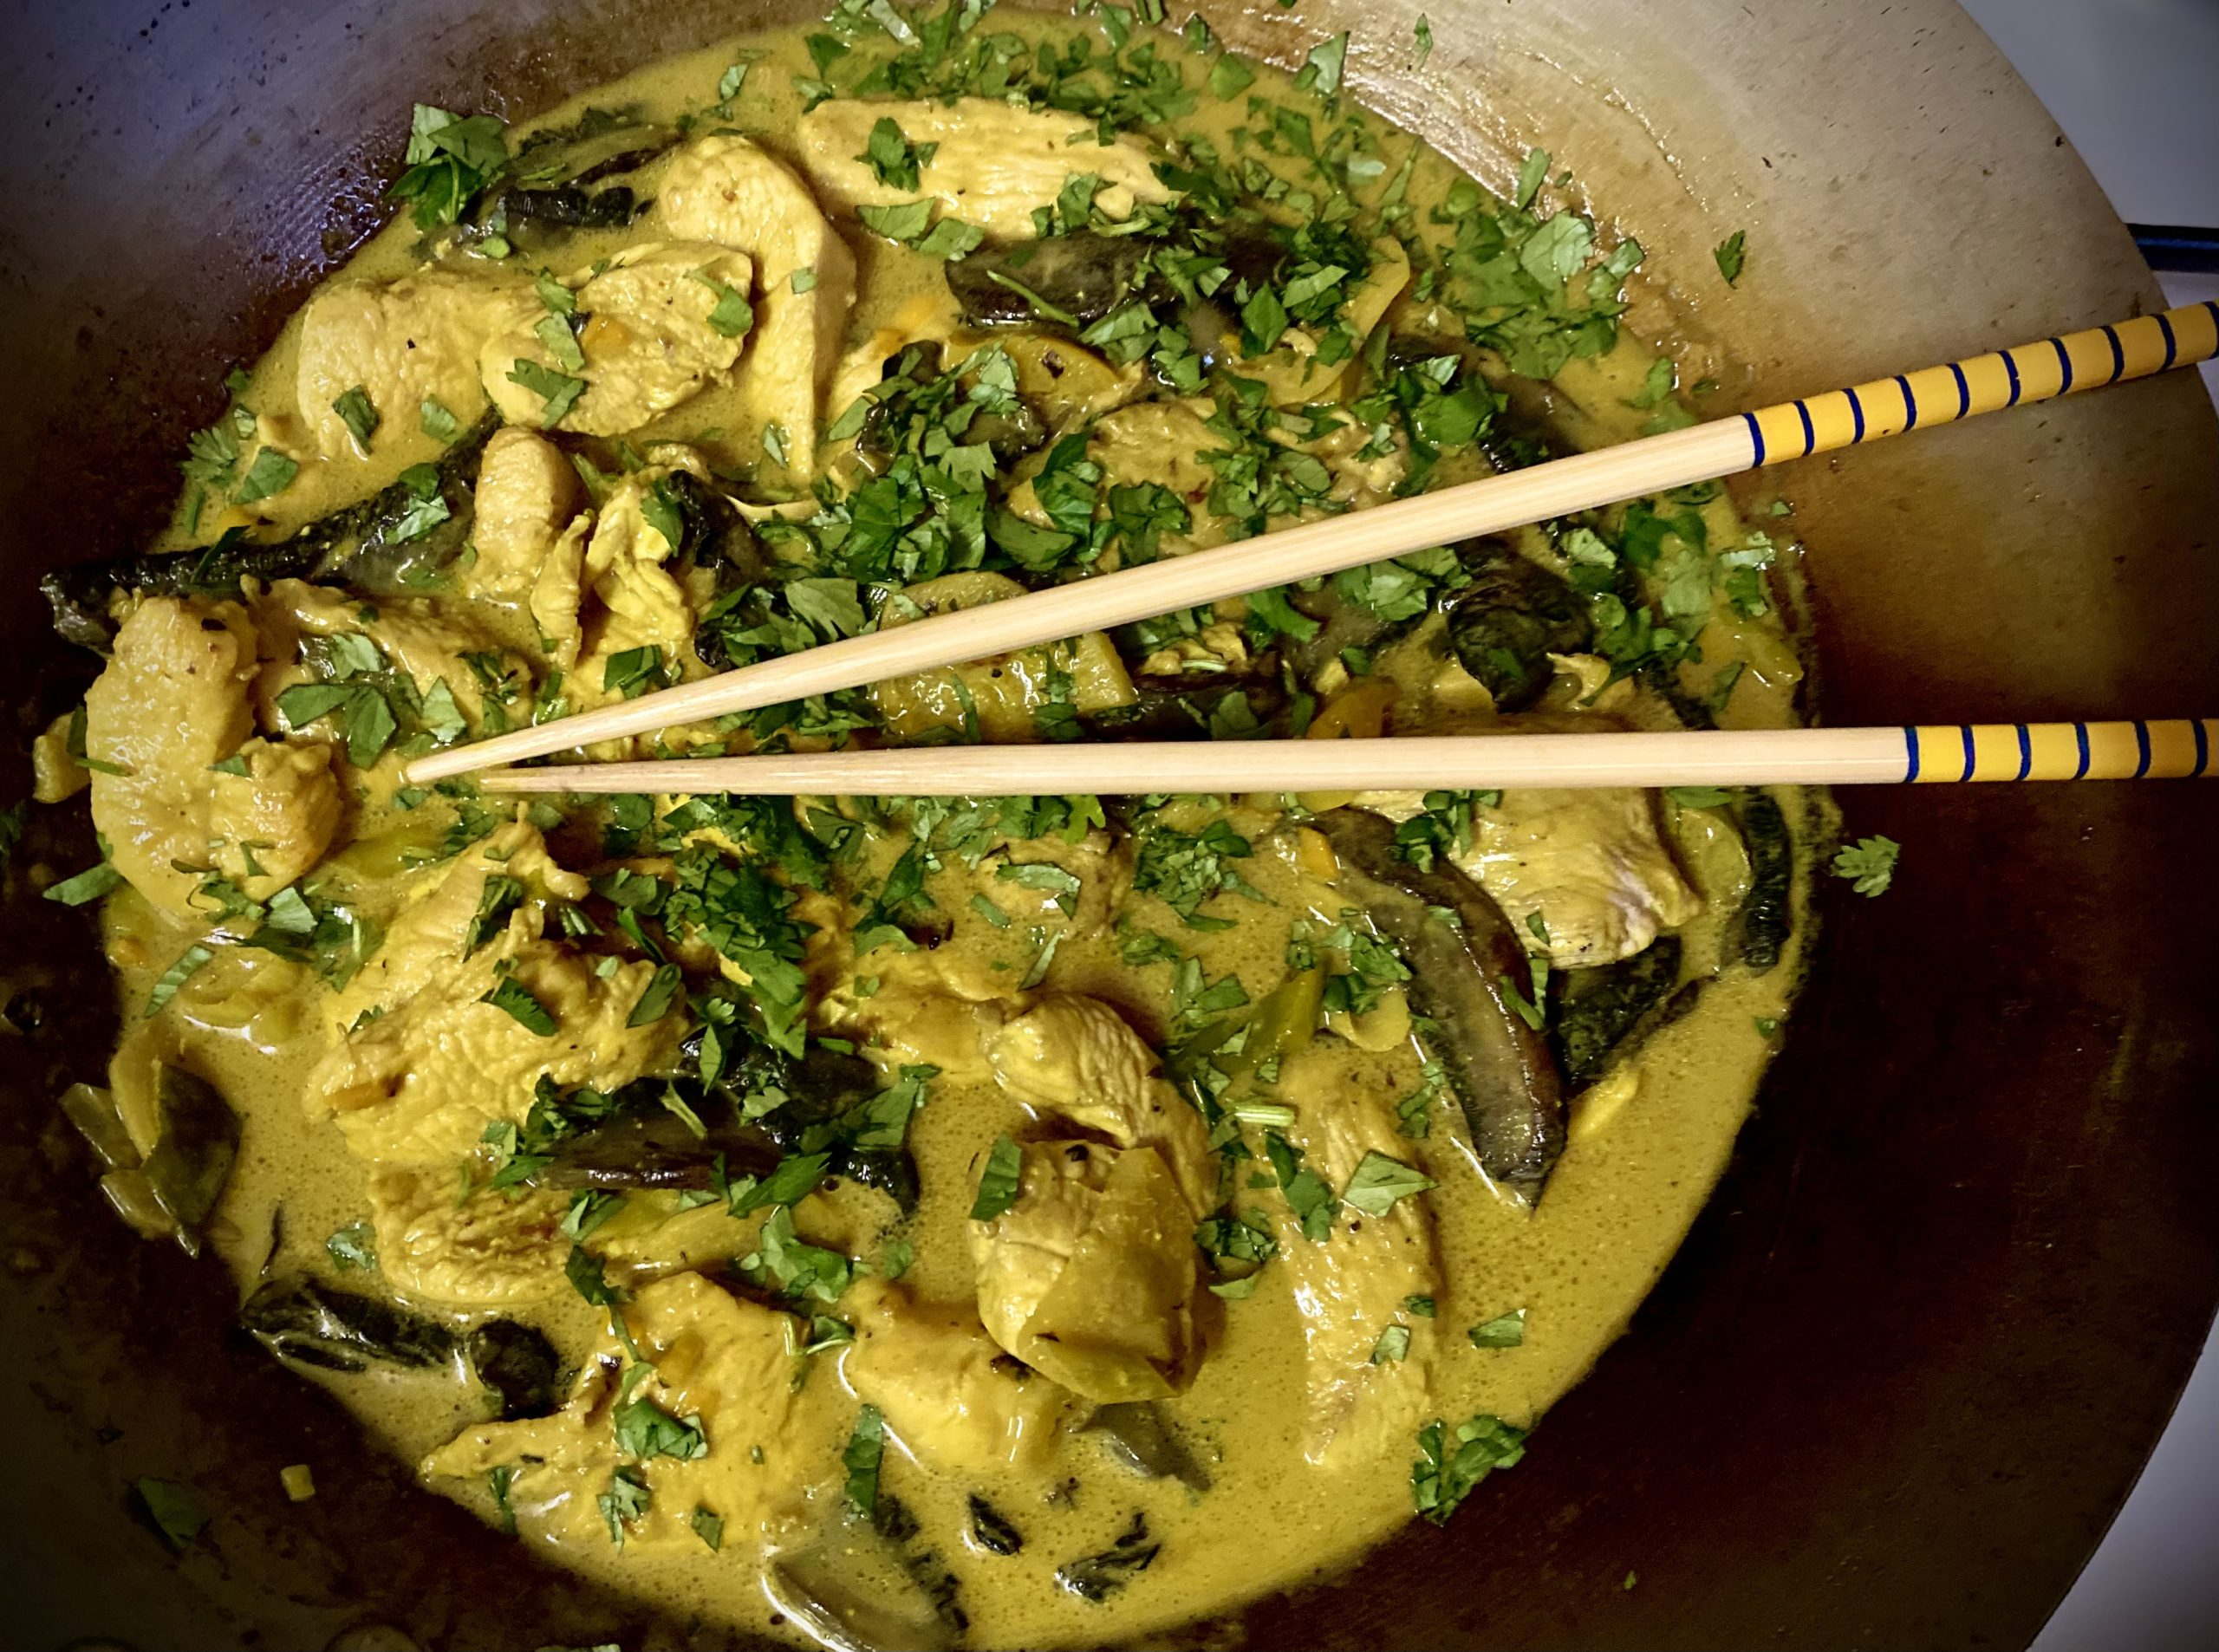 TGIFOOD: Lockdown Recipe of the Day: Yellow chicken curry in a wok